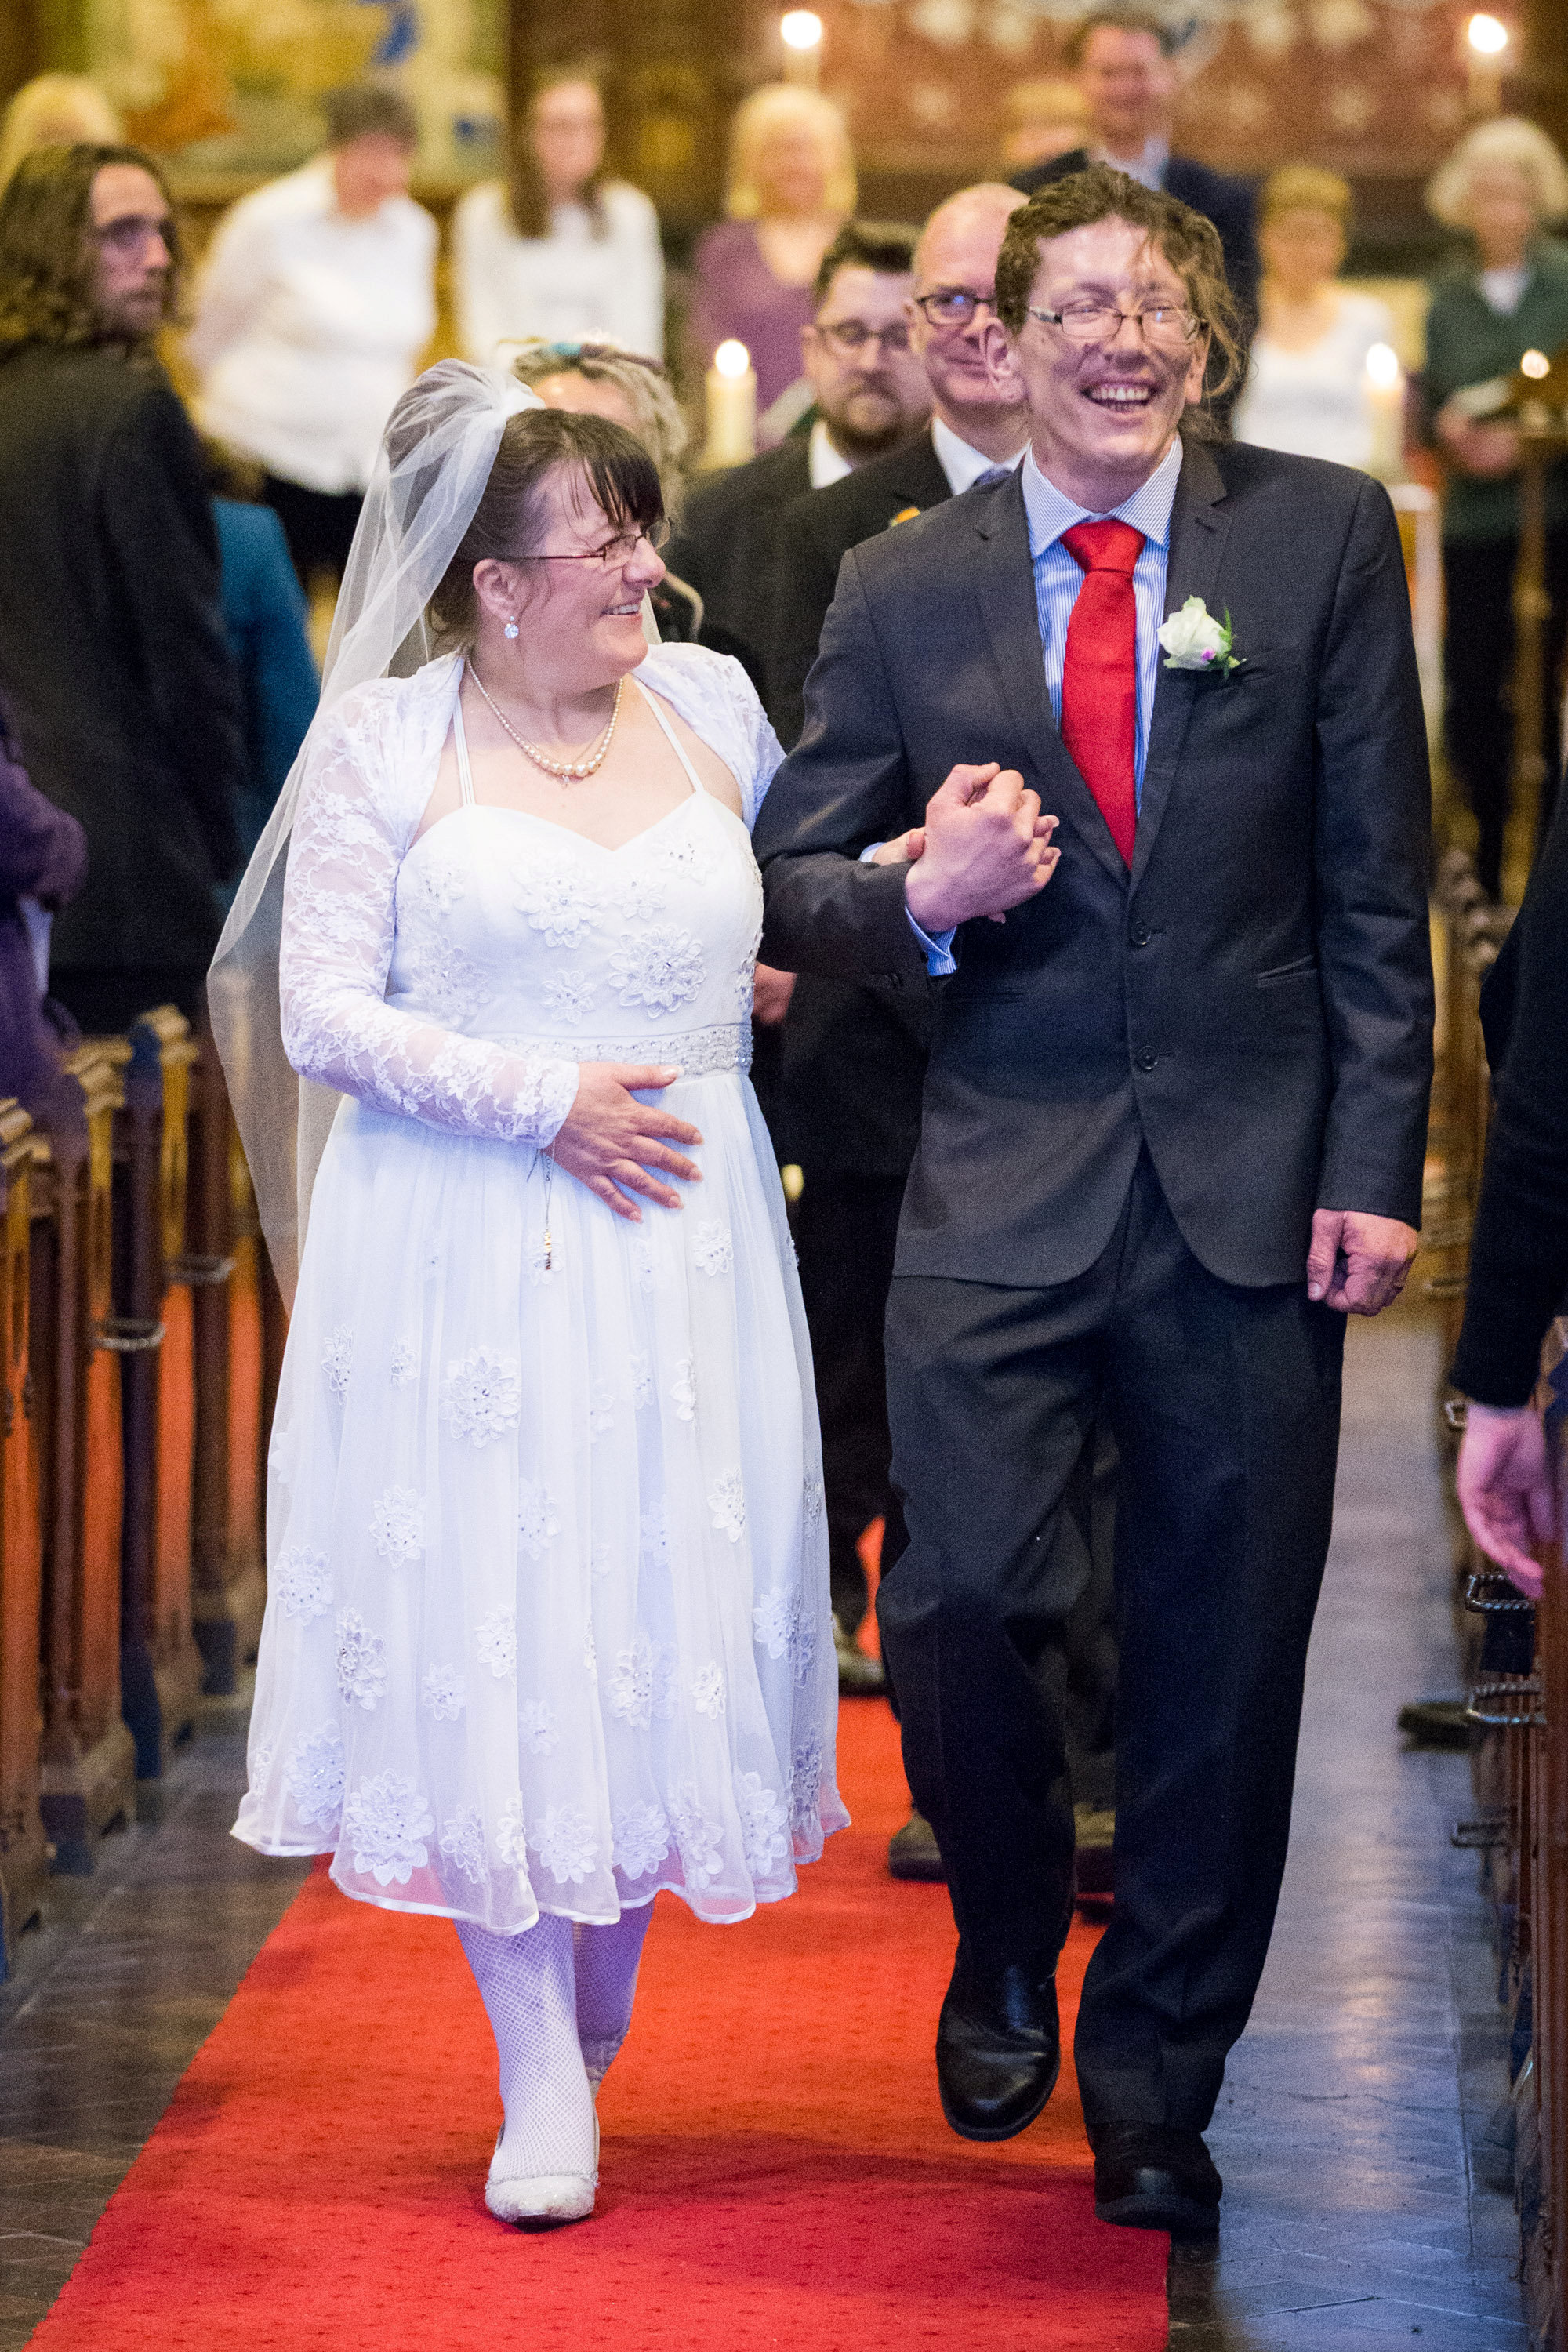 big issue seller marries woman he gave 50p to